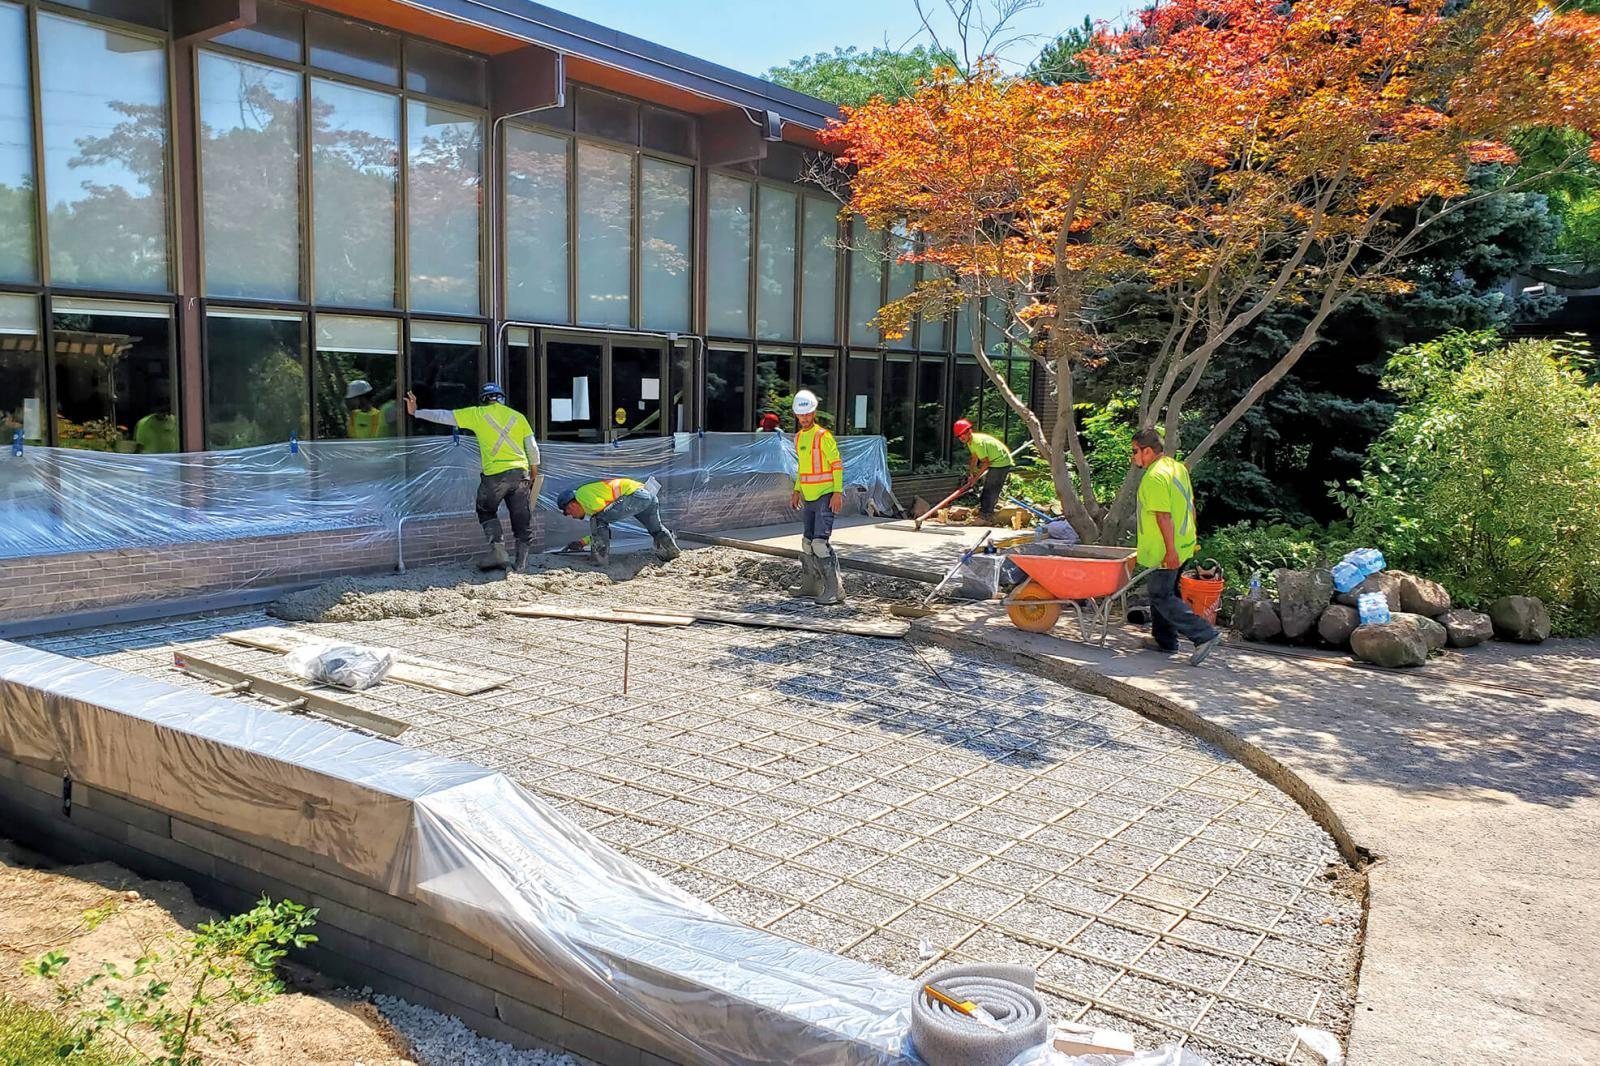 Volunteers work on installing the new outdoor space at Participation House.